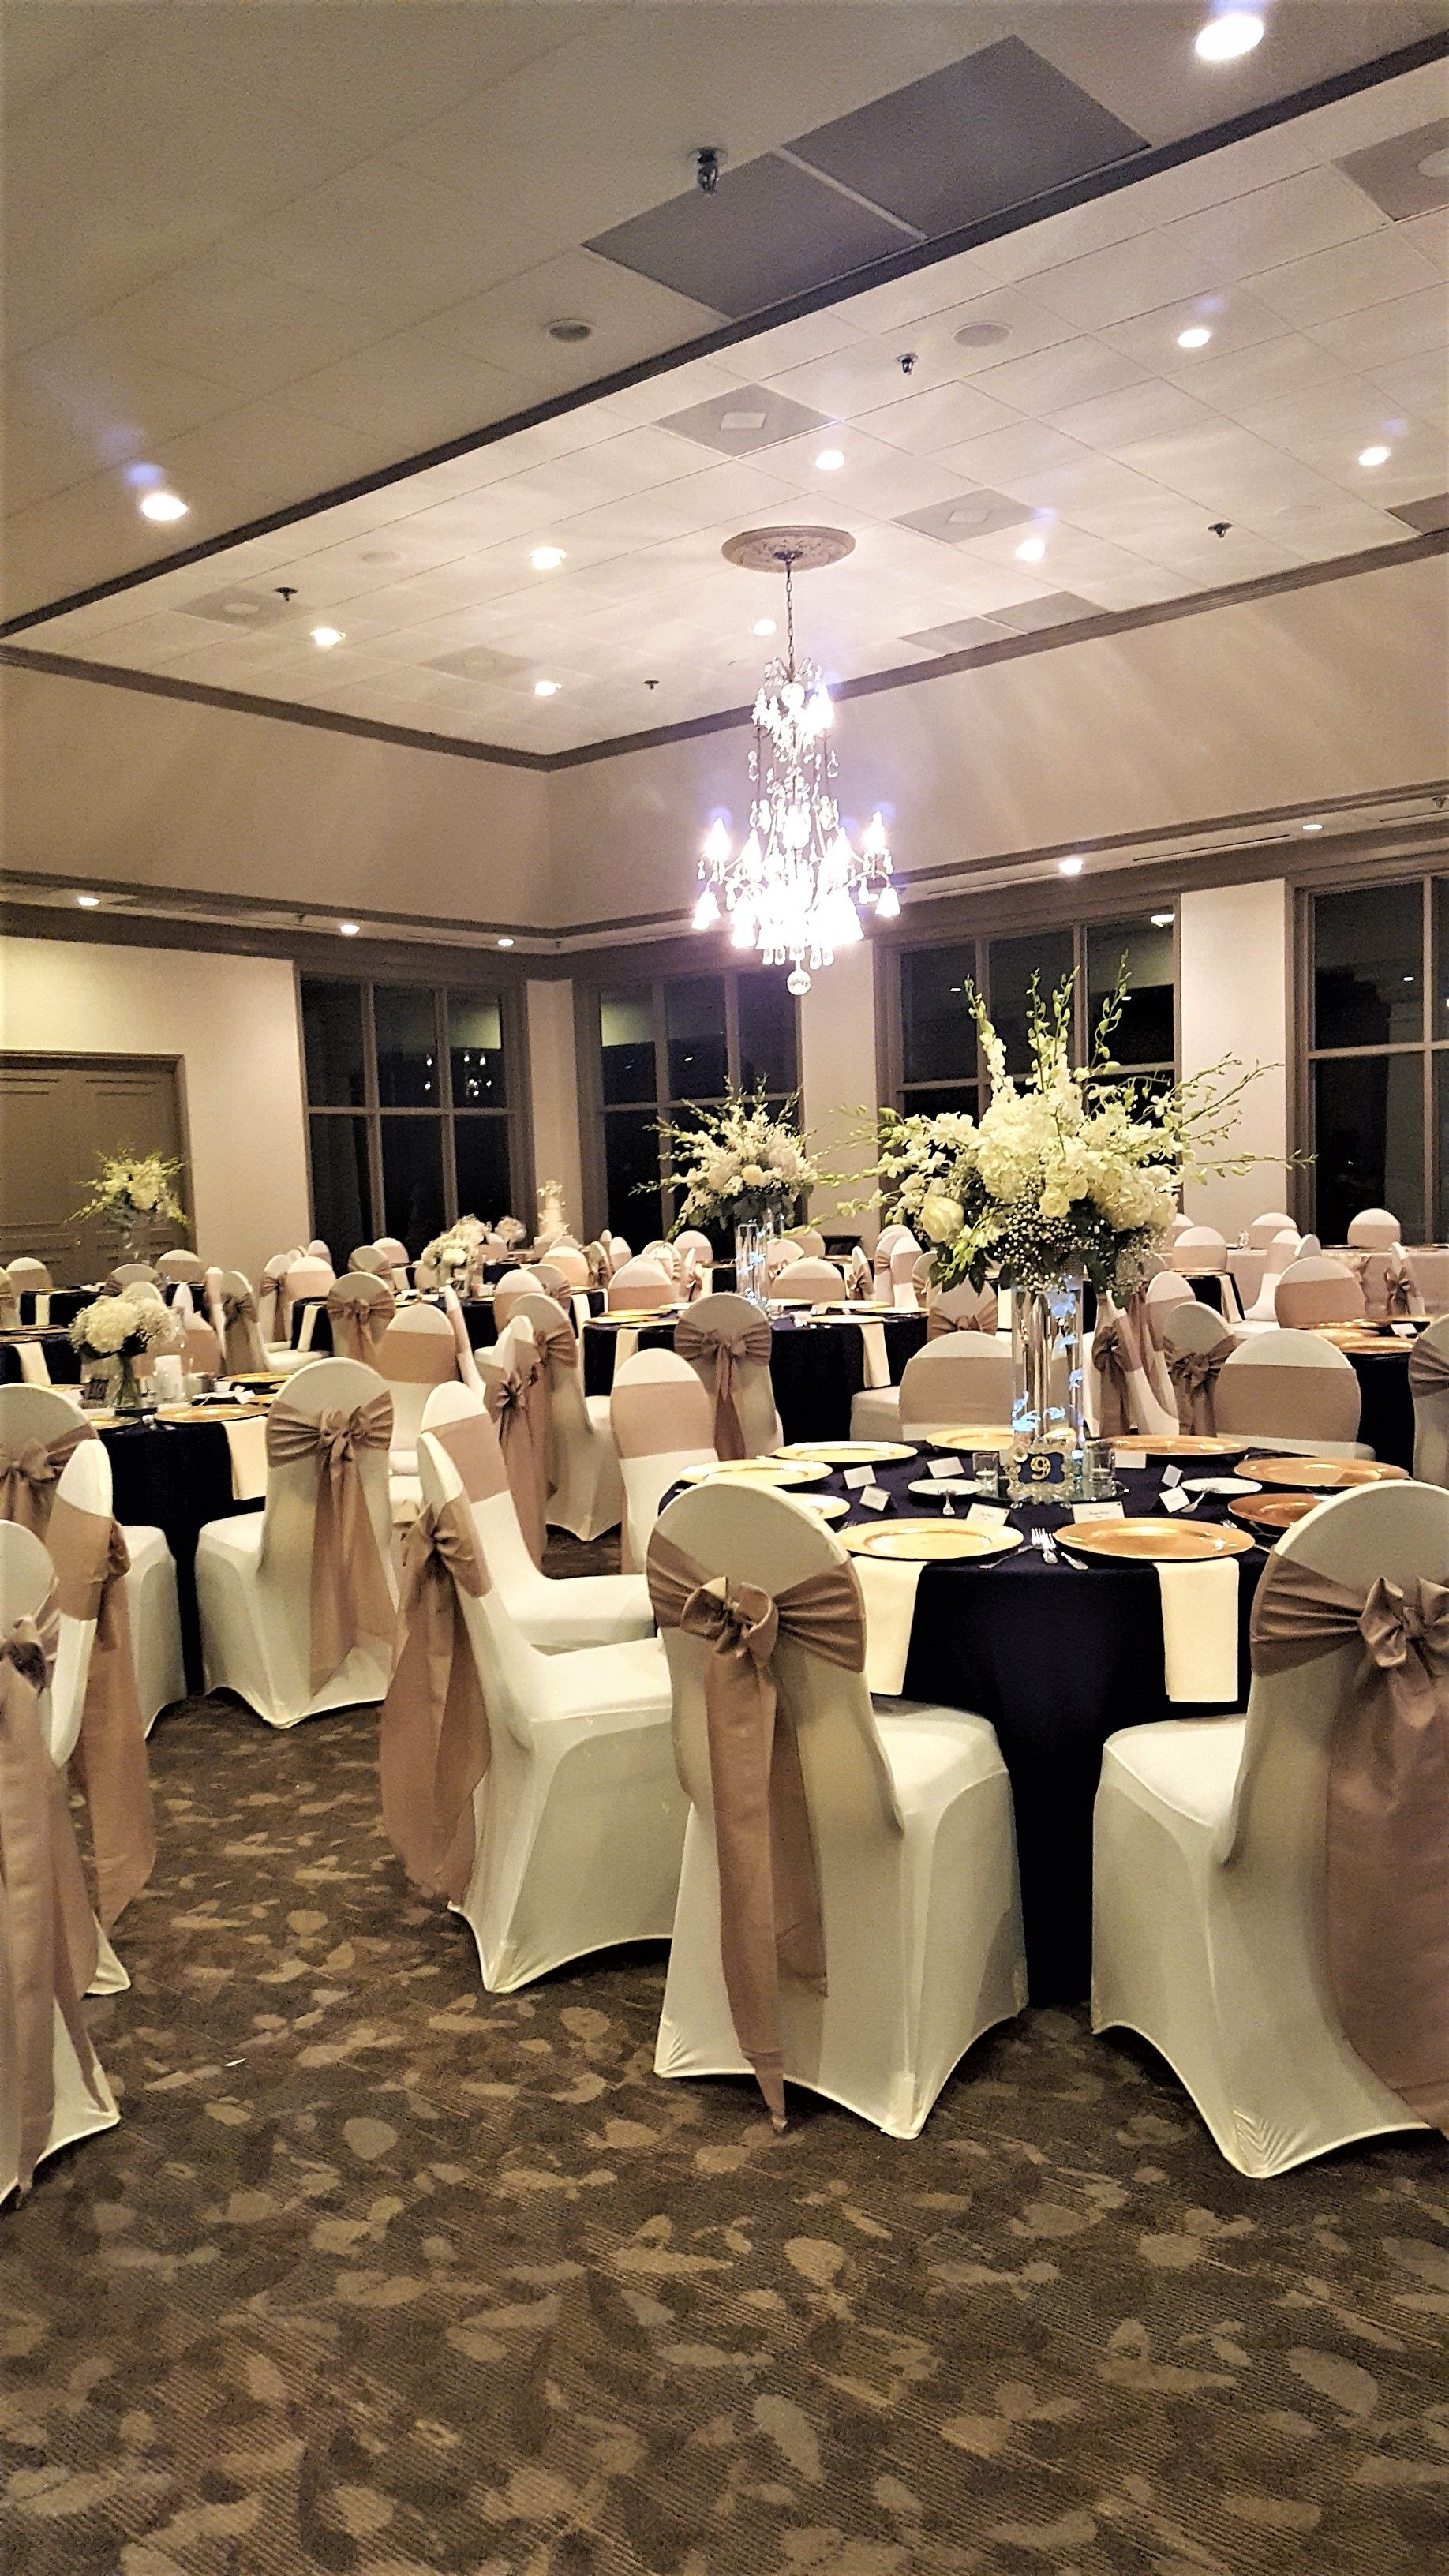 Wedding Chair Covers For Mima High Australia Reception With Ivory Spandex Gold Sashes Black Linens In The Ballroom At Sugar Creek Country Club Chaircovers